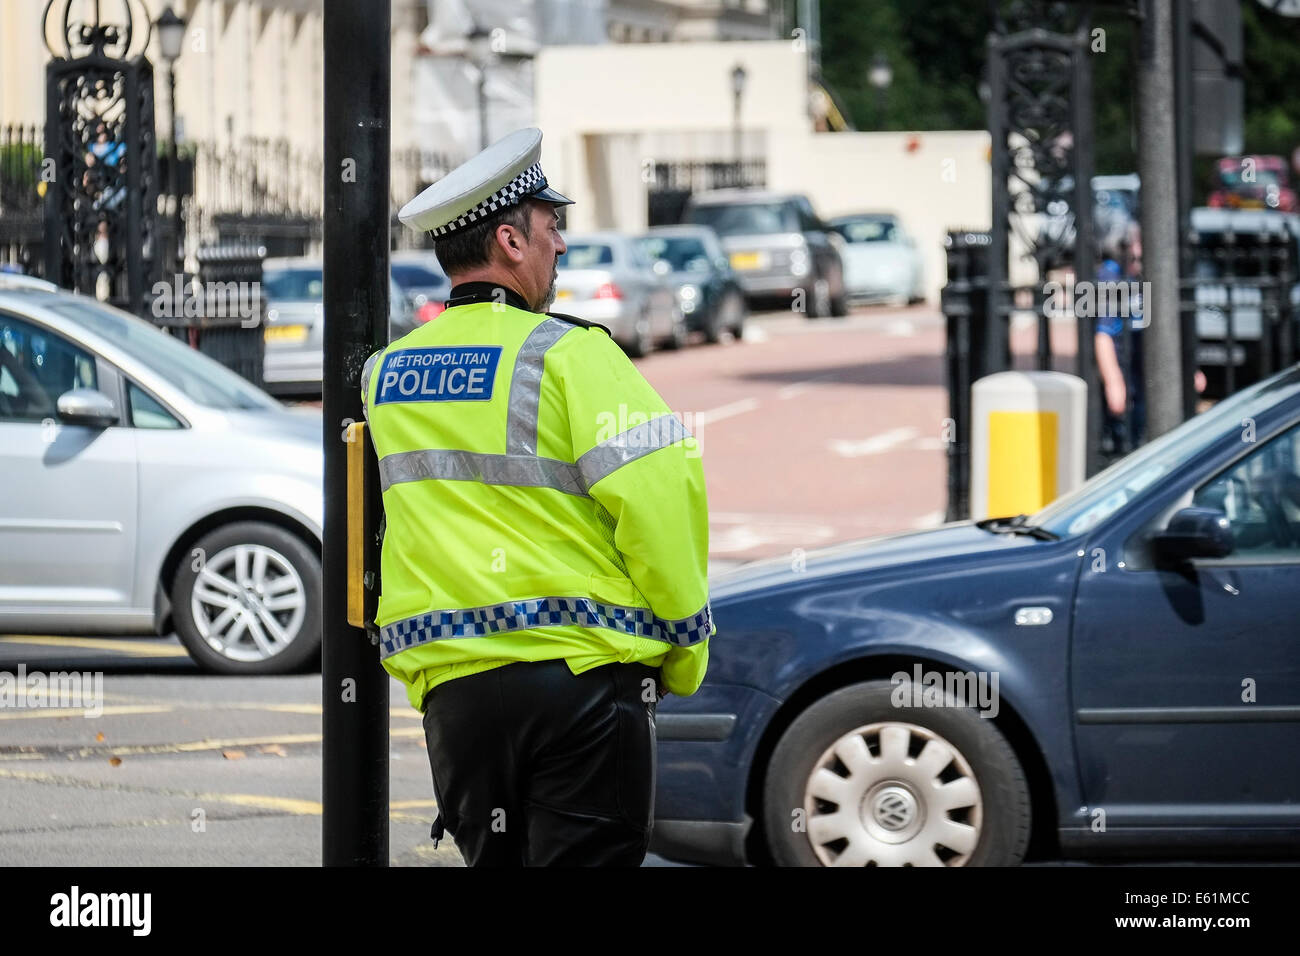 A Metropolitan police officer watching traffic at a junction. - Stock Image